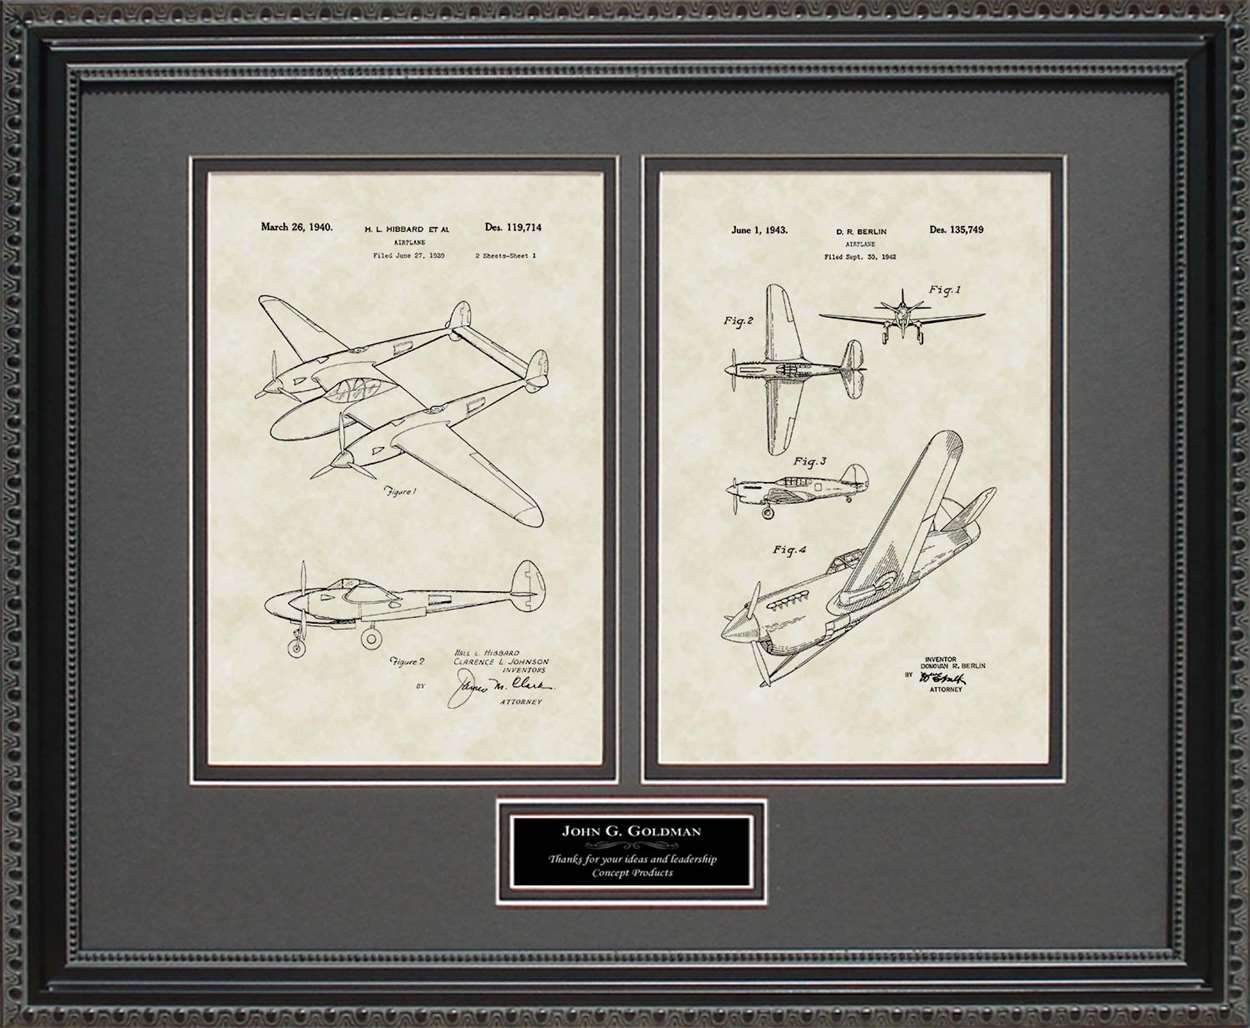 Personalized P-38 & P-41 Patents, 16x20